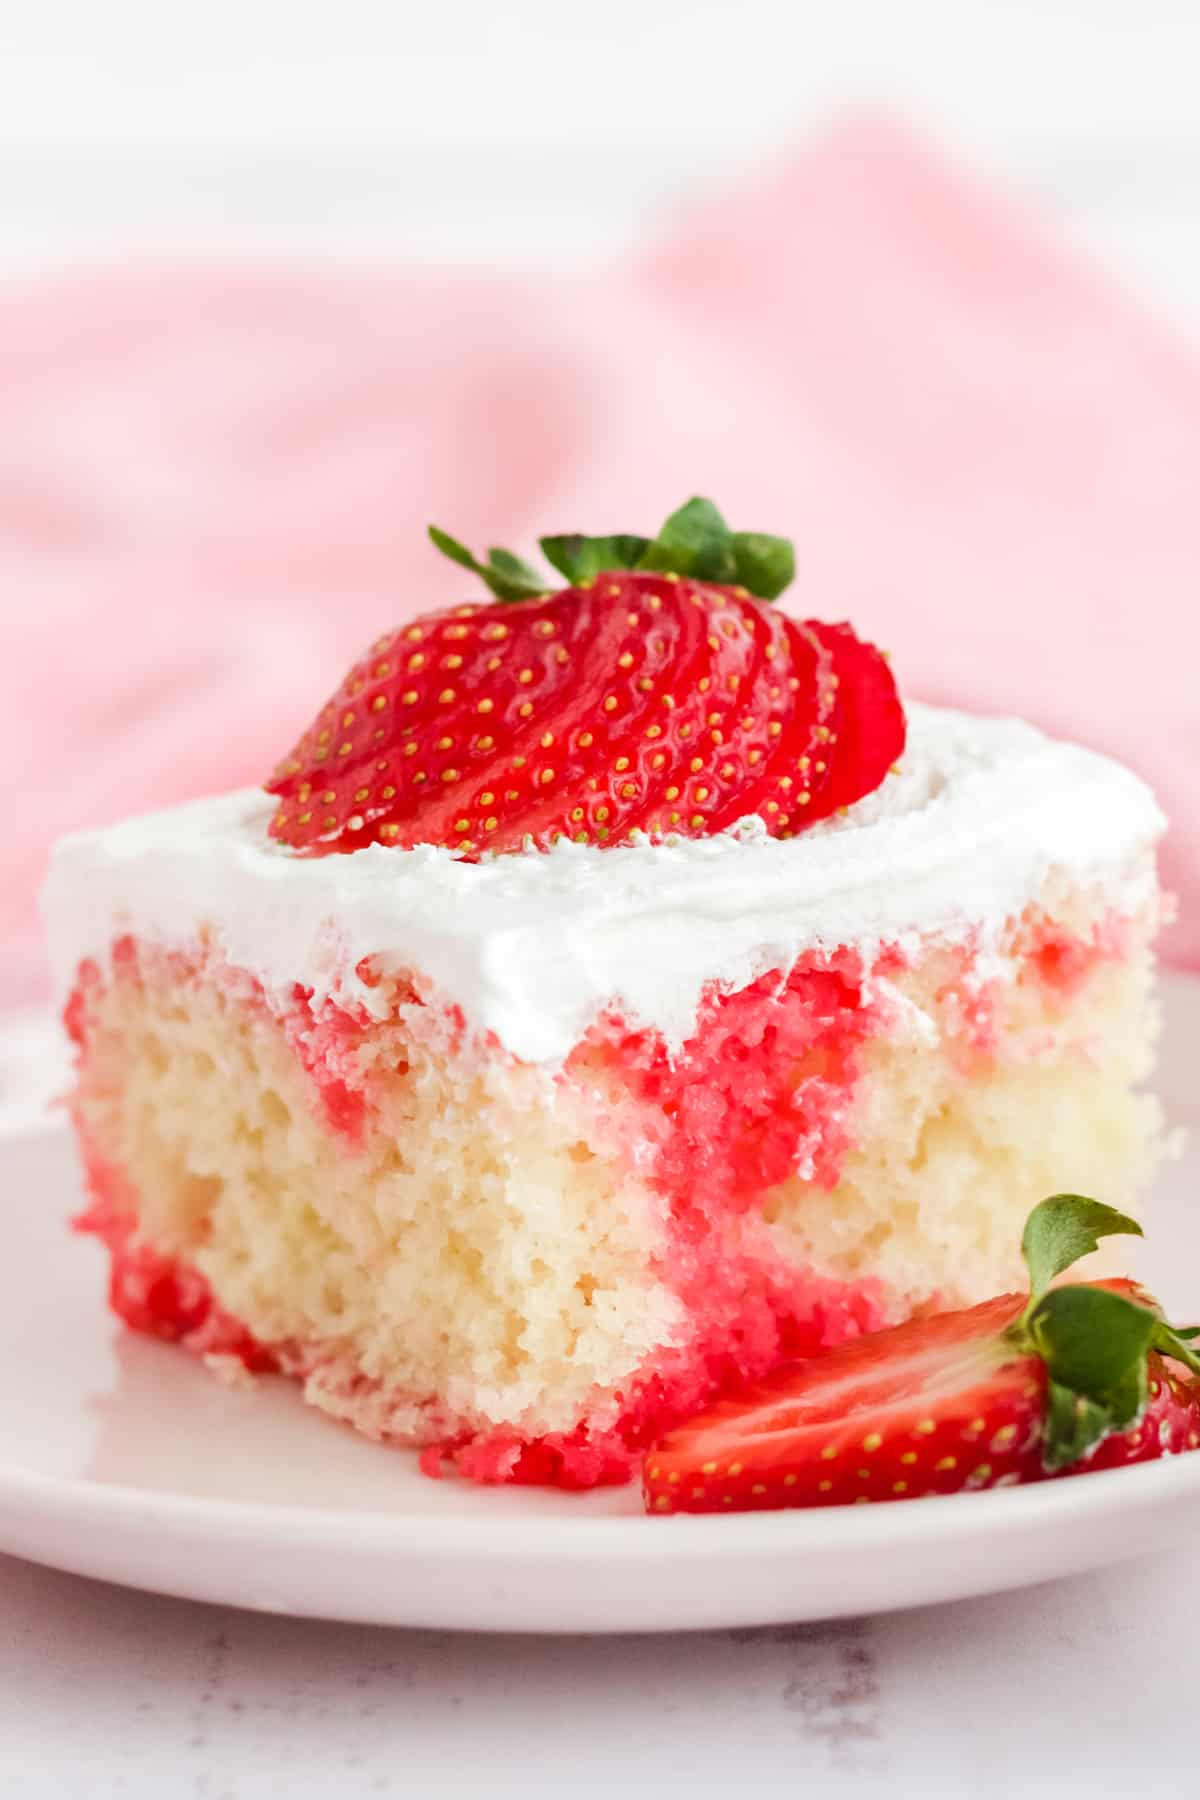 Close up of cake on white plate topped with fanned strawberry